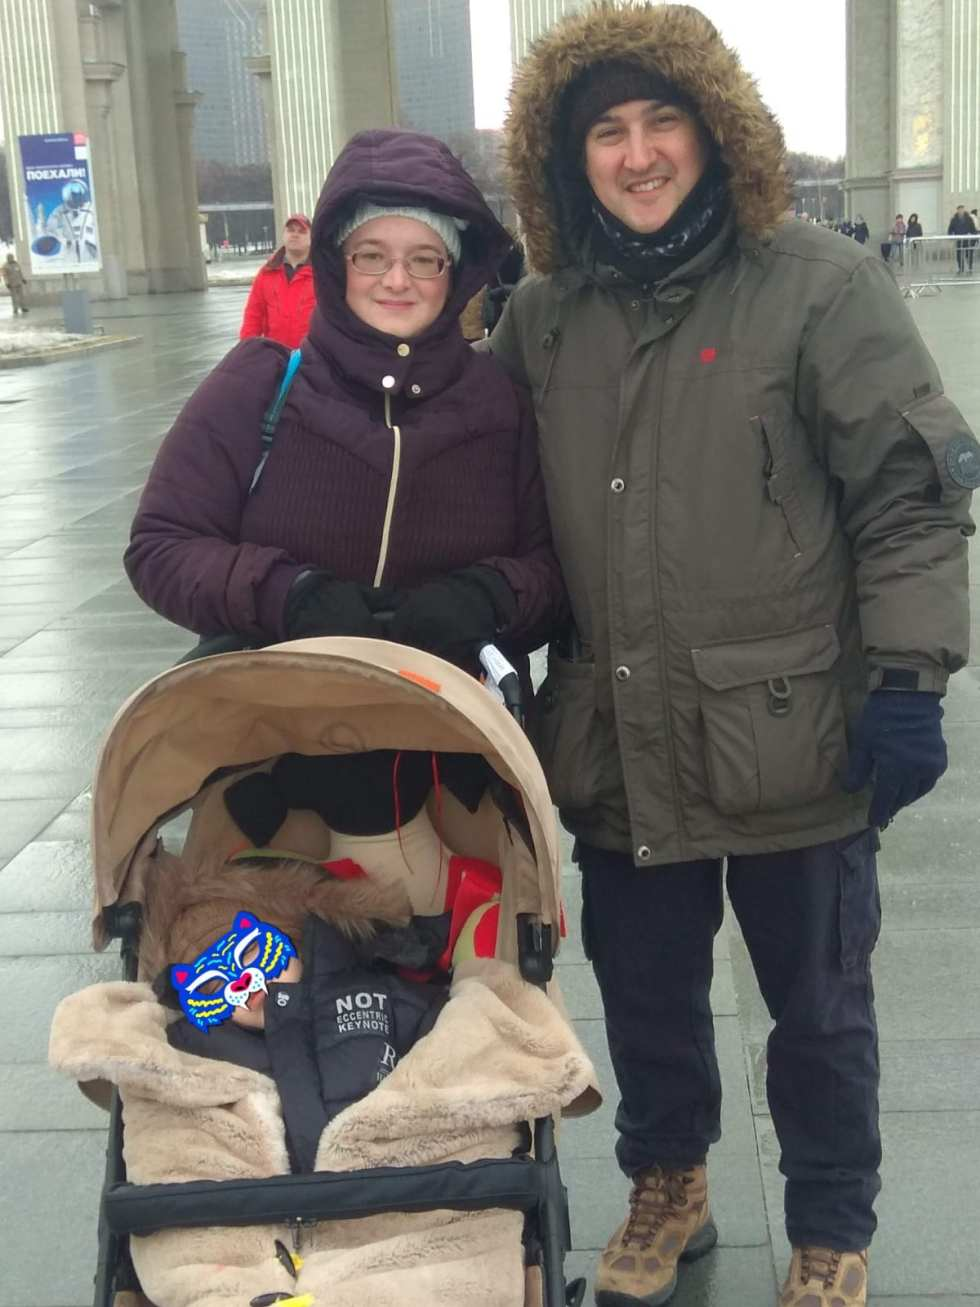 Tightly wrapped for a cold March walk in Moscow before stem cell treatment for autism